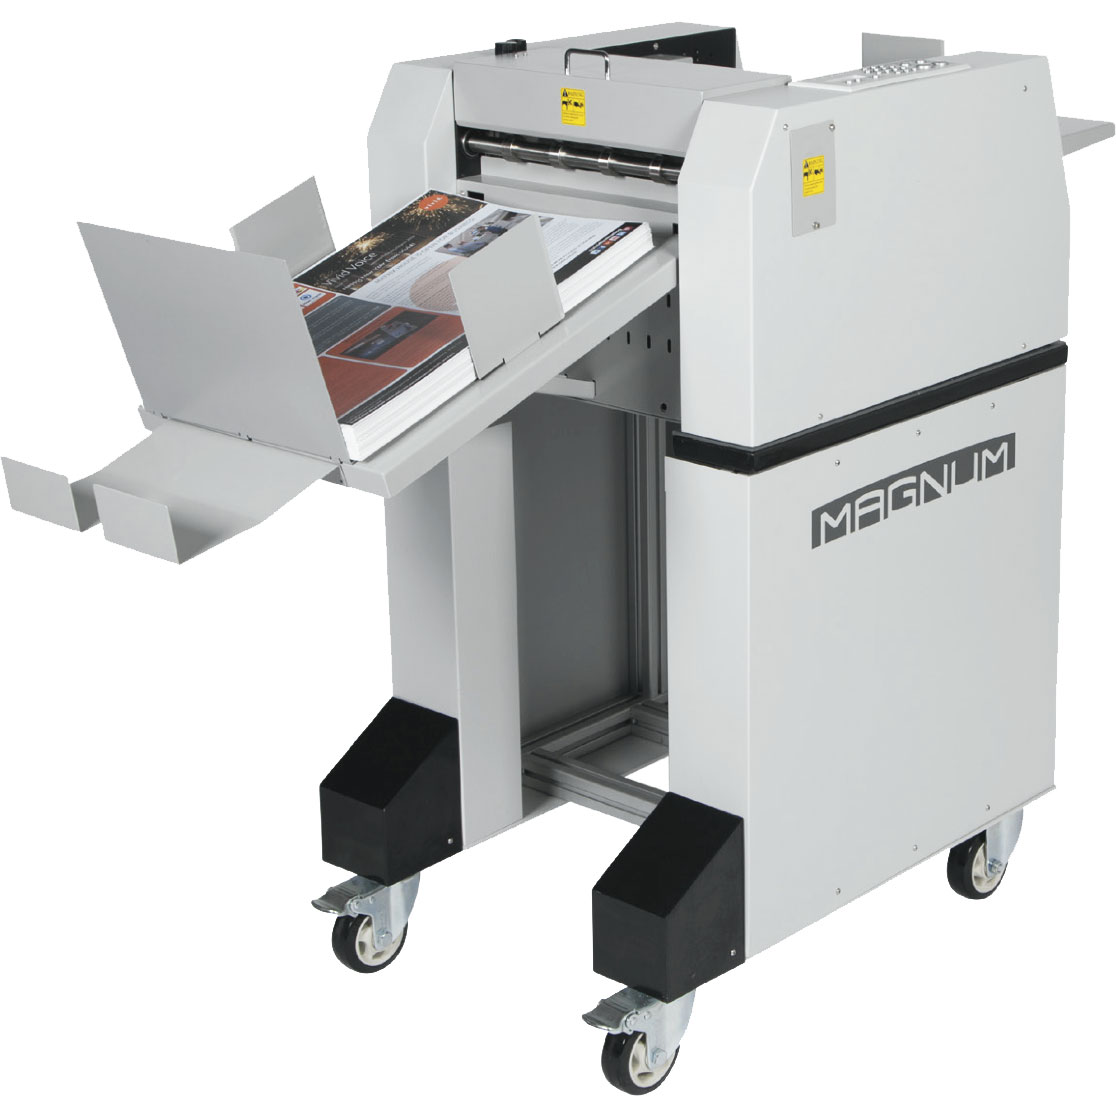 Magnum MC-35 Semi-Automatic Creaser Perforator